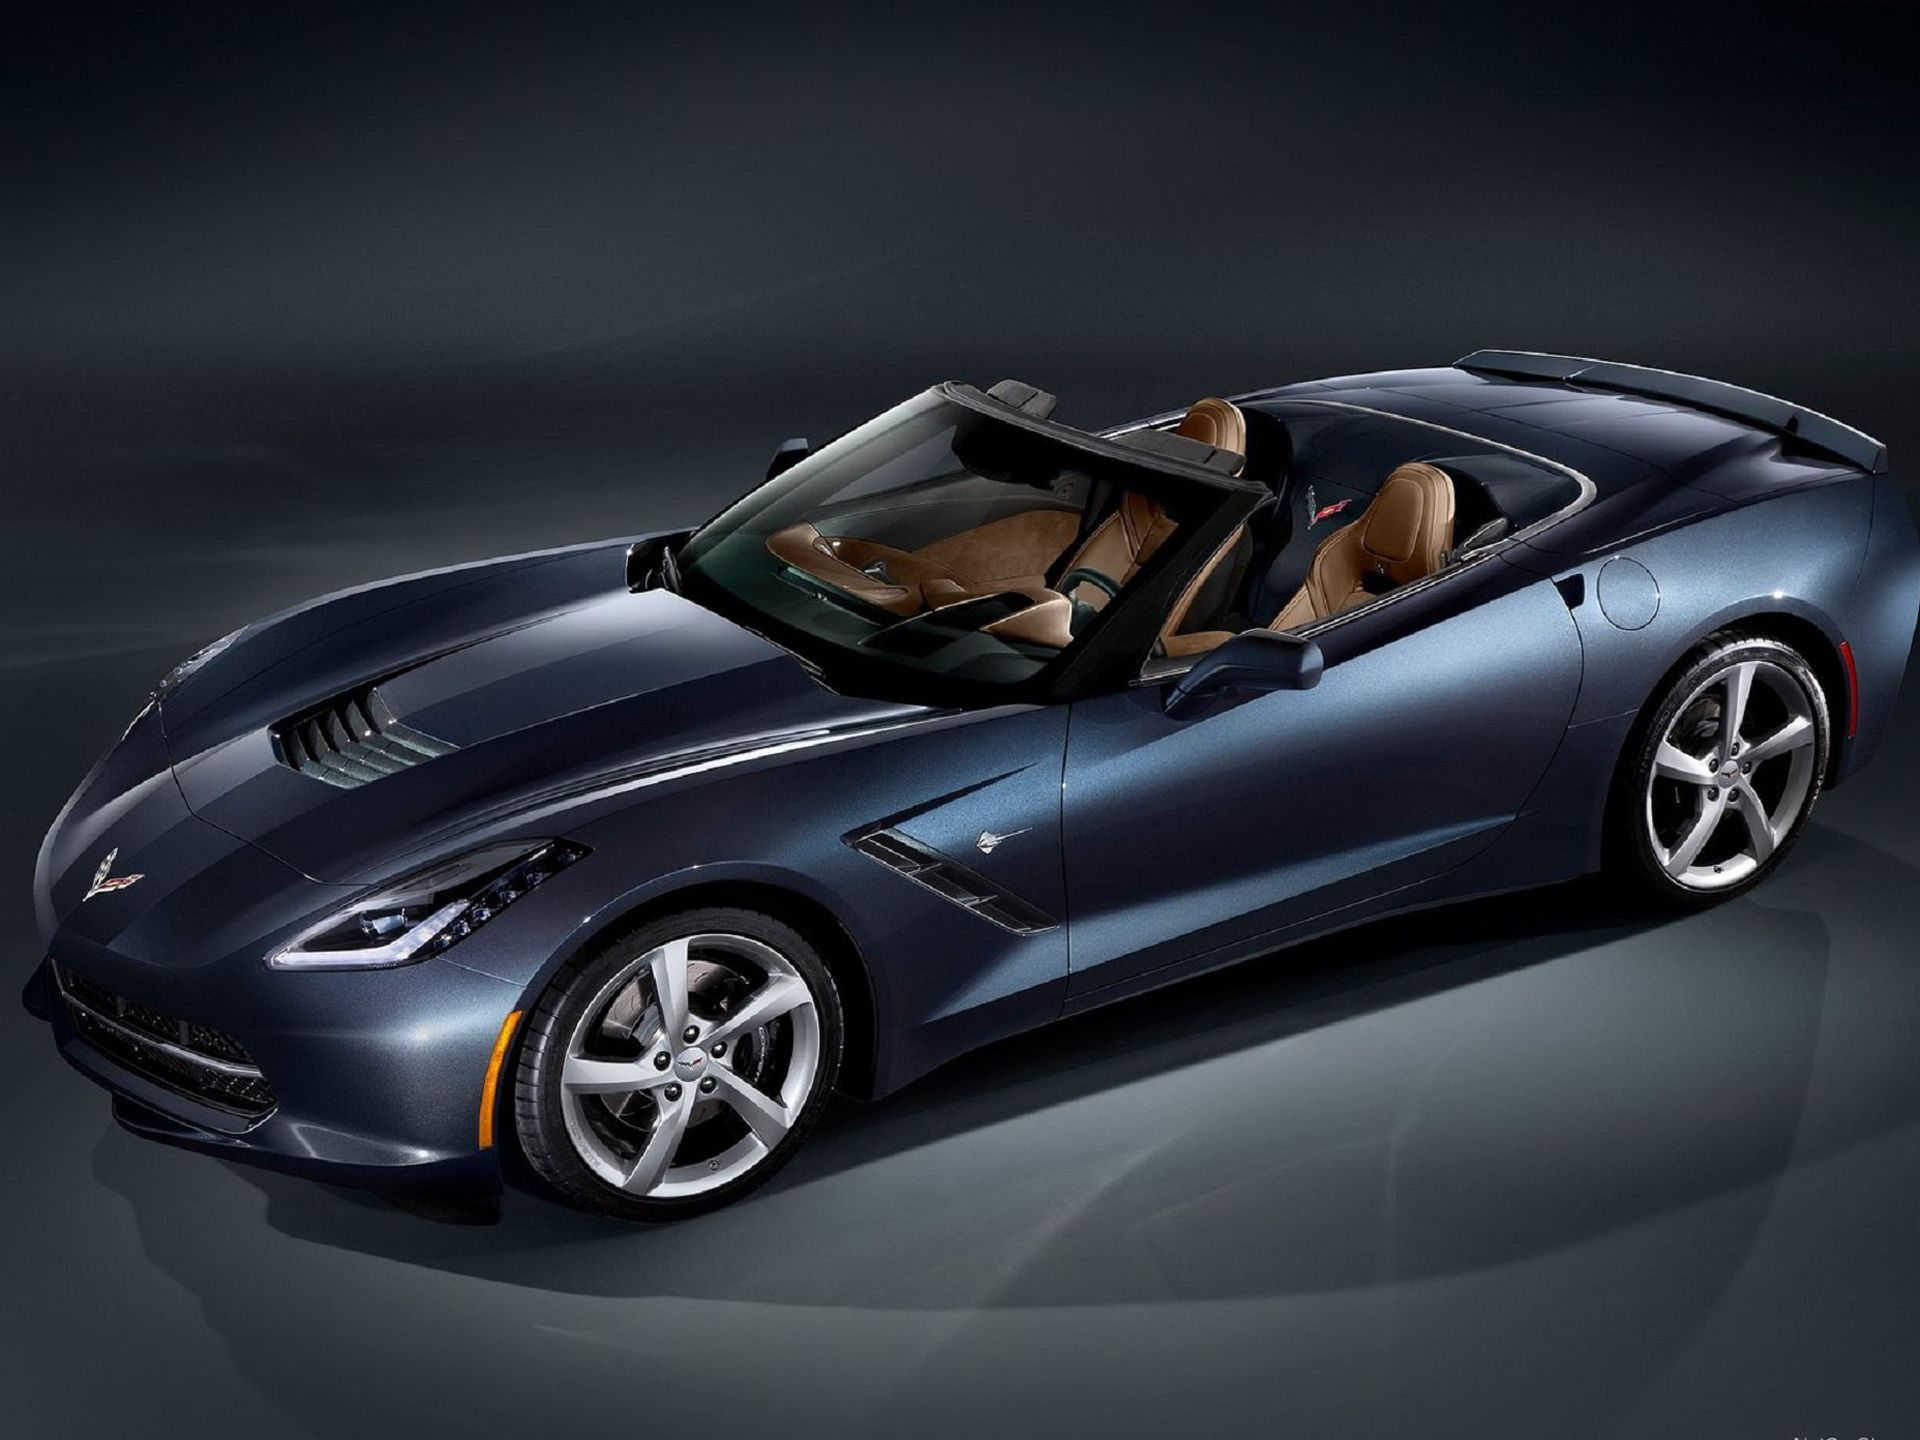 Cars Wallpapers: C7 CORVETTE Cars HD Wallpapers & Pictures